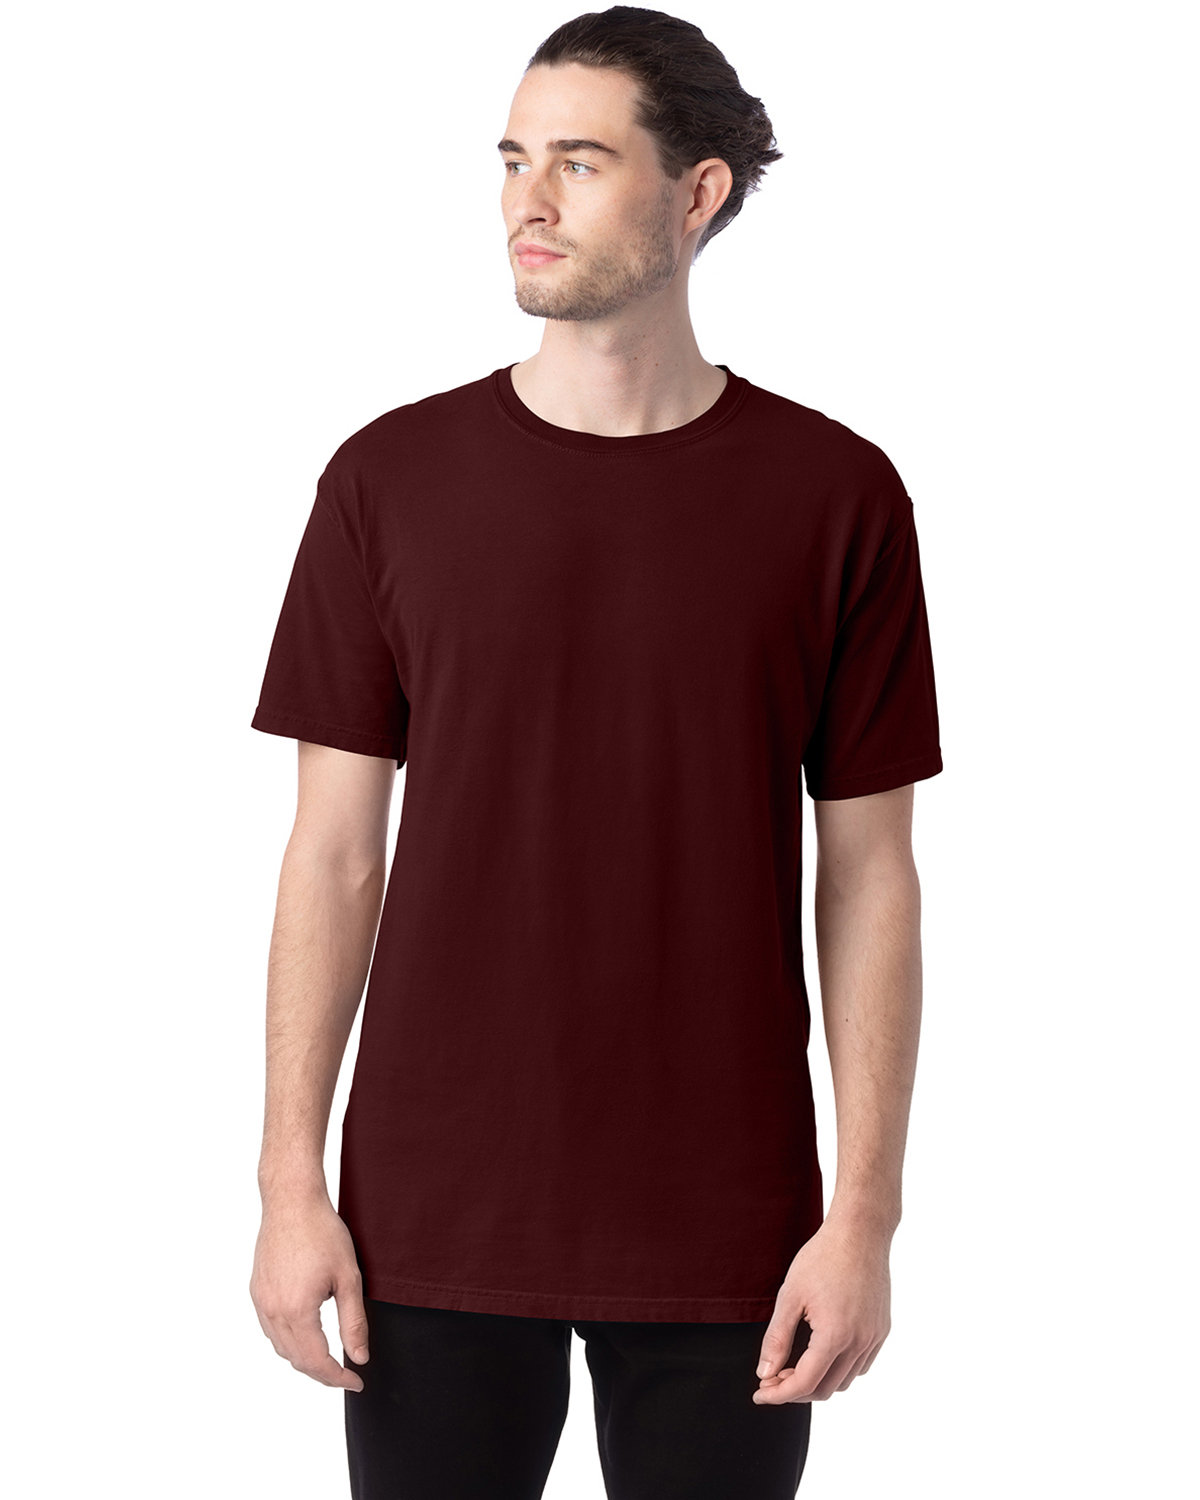 ComfortWash by Hanes Men's 5.5 oz., 100% Ringspun Cotton Garment-Dyed T-Shirt MAROON